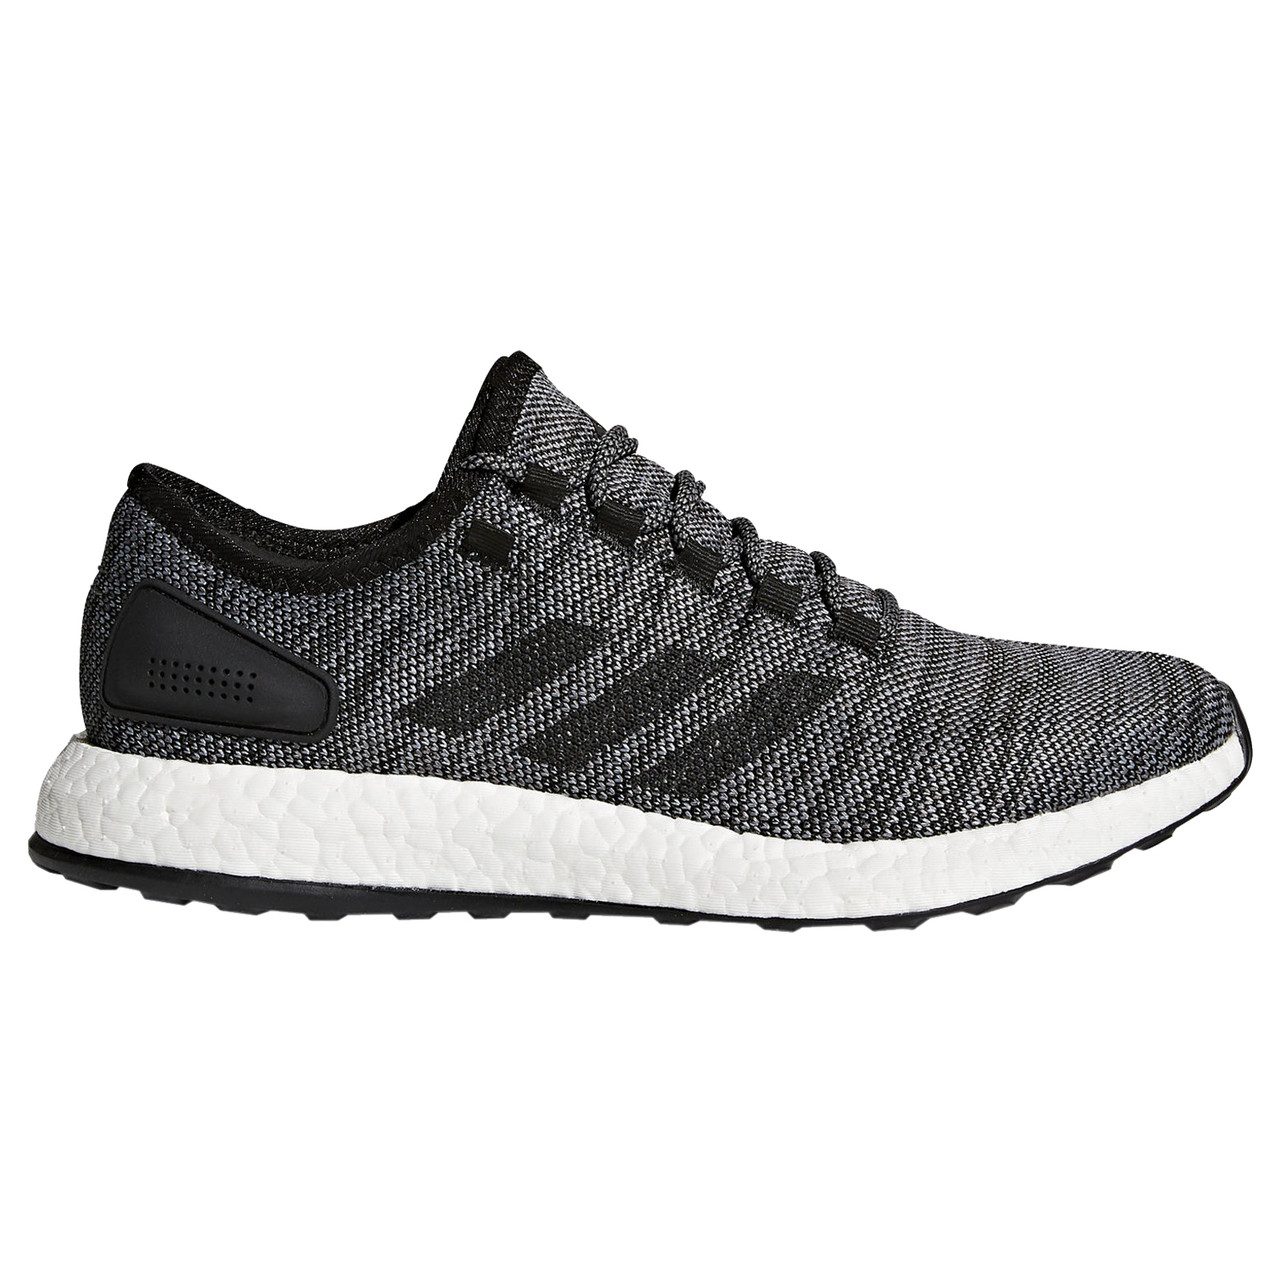 4cd0c4fa5 Adidas PureBOOST All Terrain Mens Sneakers S80787 - Grey